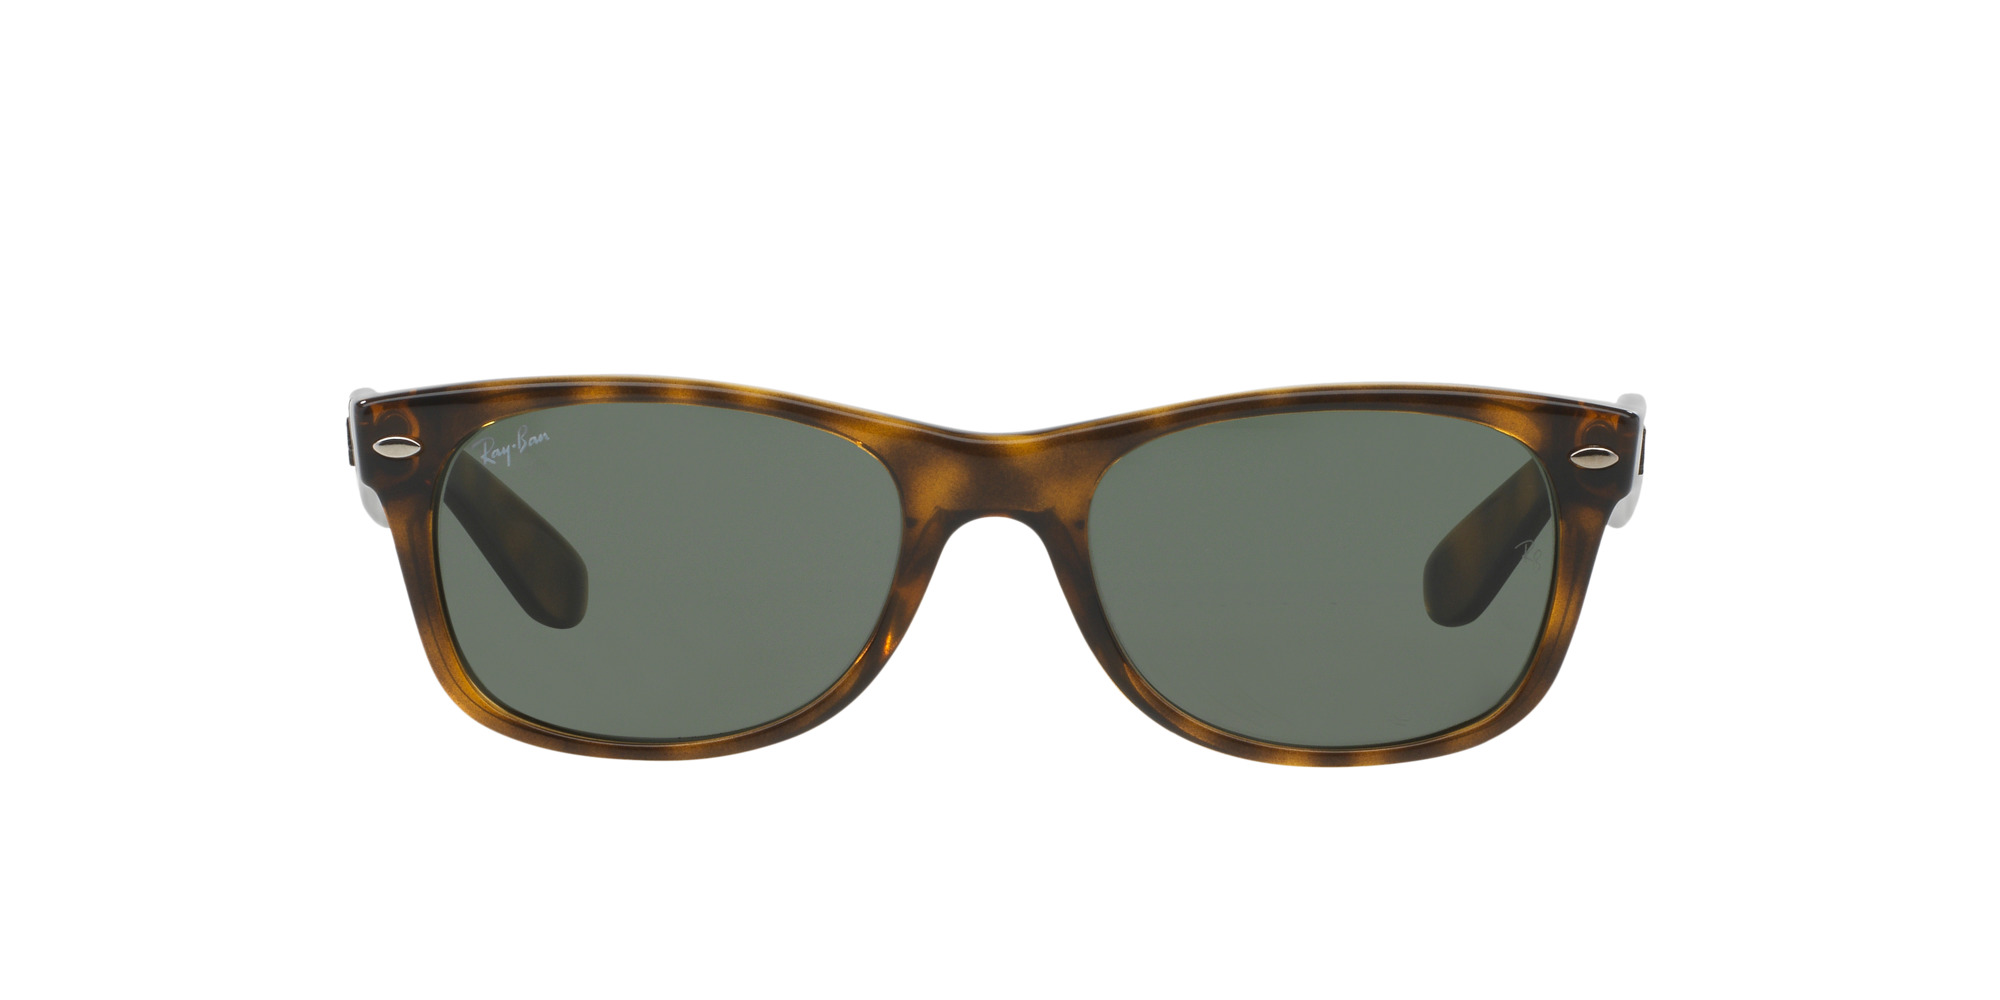 RAY-BAN NEW WAYFARER RB 2132 902-360